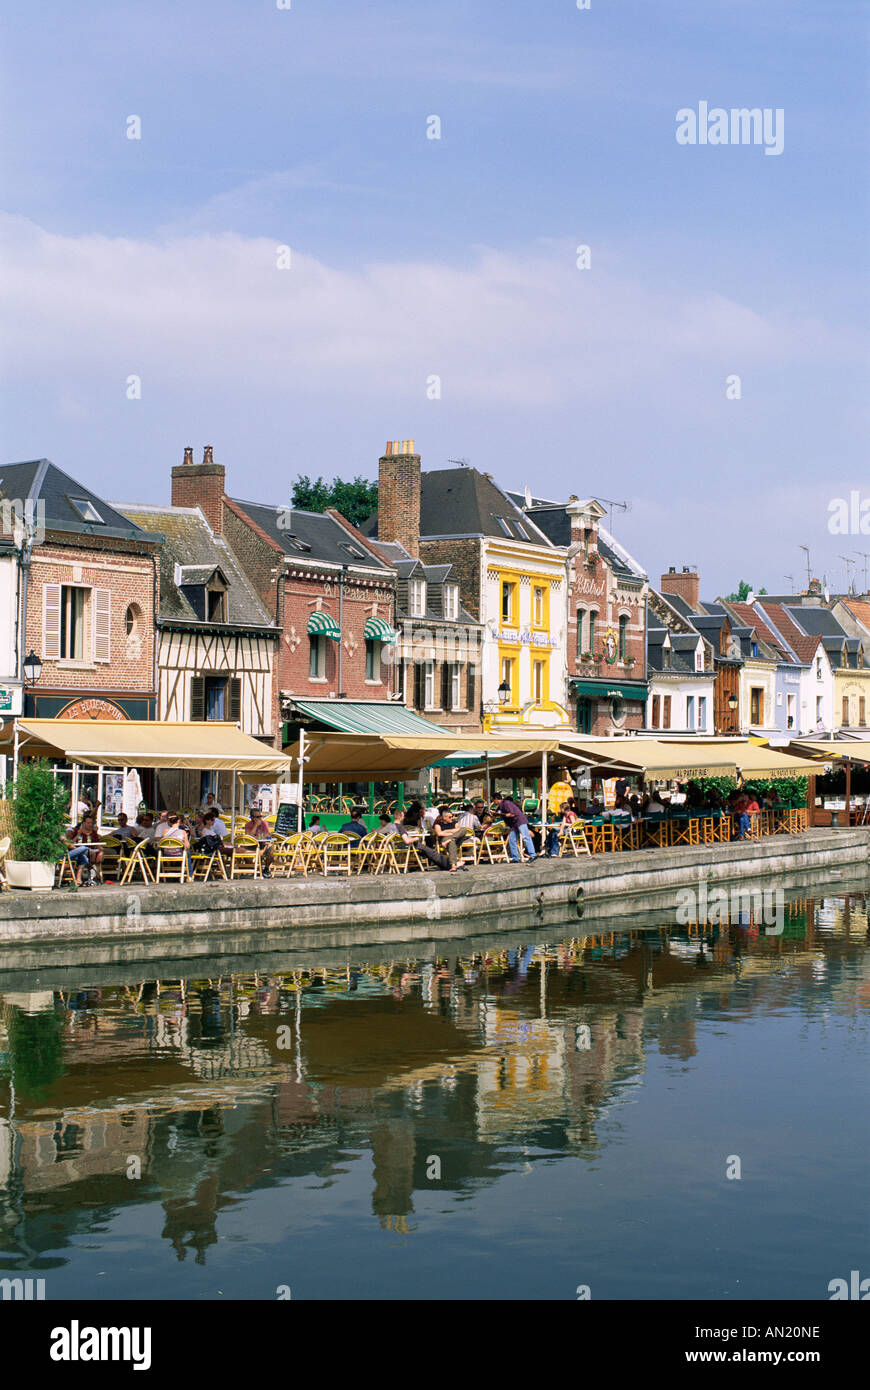 France, Picardy, Amiens, Waterside Restaurants at St.Leu Area Stock Photo